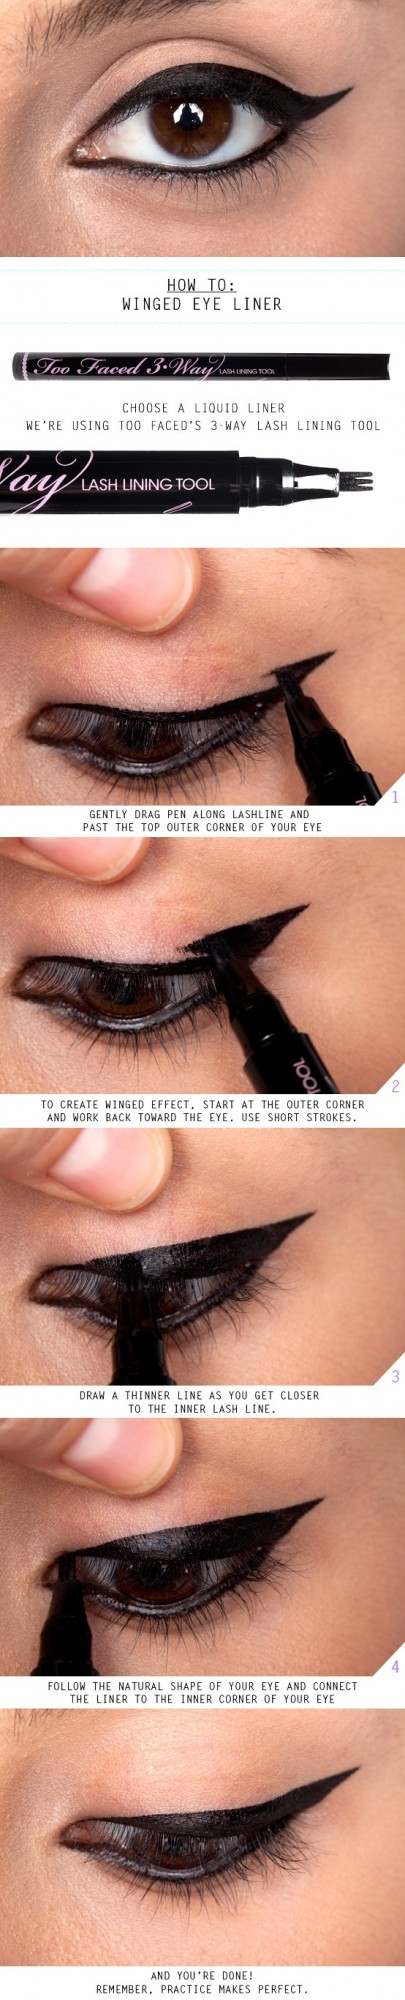 23 Great Makeup tutorials and tips